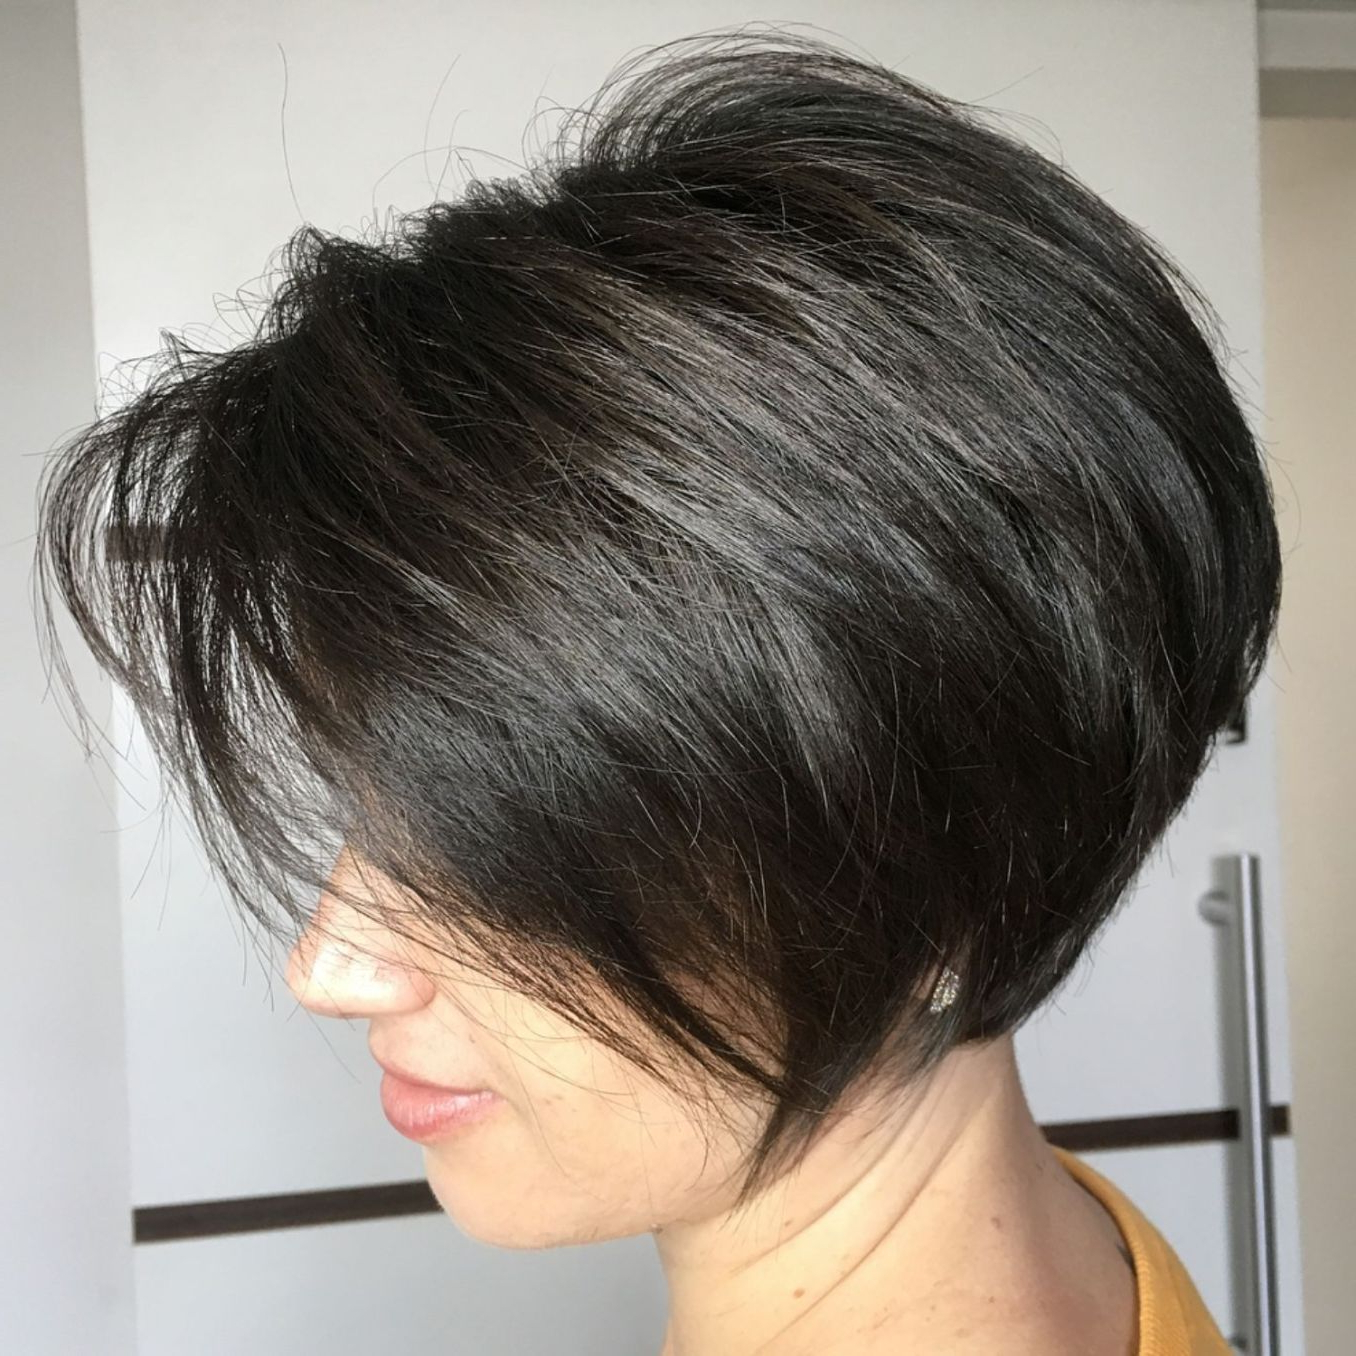 60 Classy Short Haircuts And Hairstyles For Thick Hair In 2018 Pertaining To Jaw Length Inverted Curly Brunette Bob Hairstyles (Gallery 20 of 25)